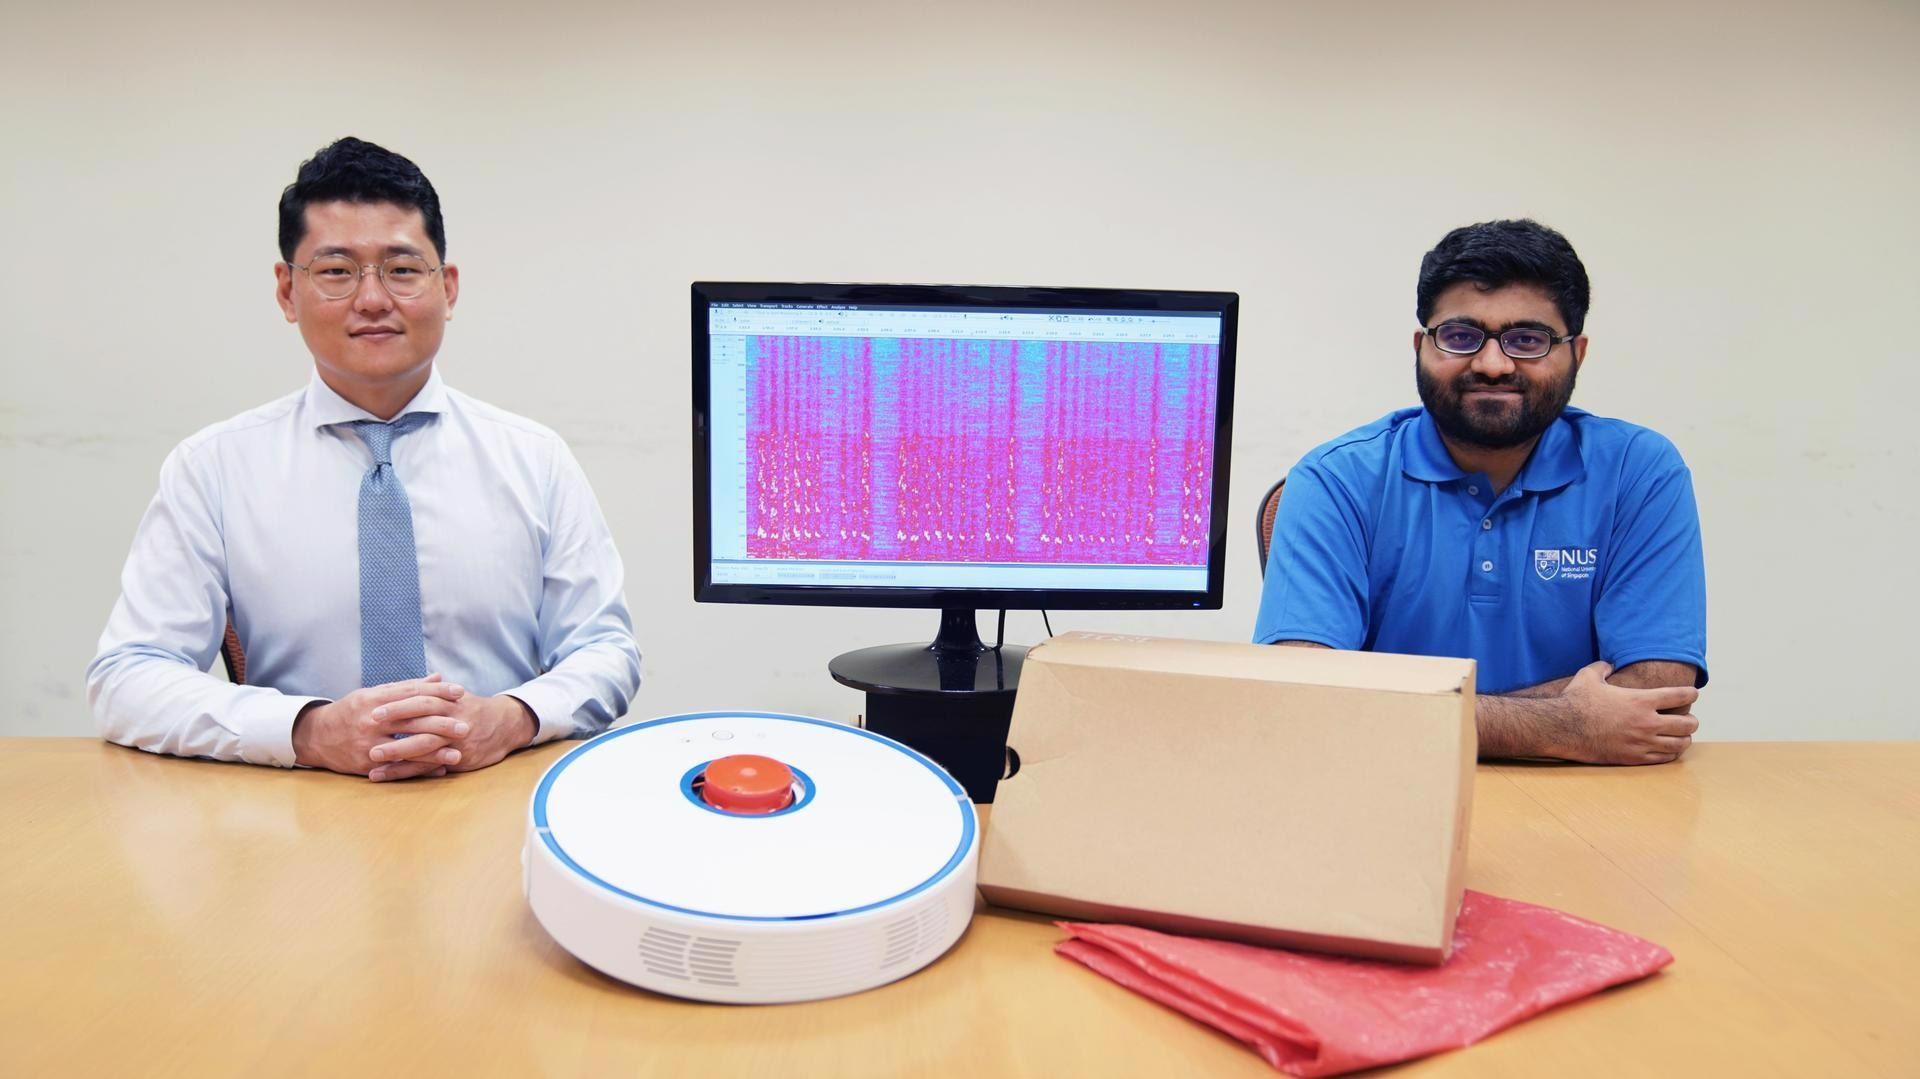 Assistant Professor Jun Han (left) and doctoral student Mr Sriram Sami (right) from NUS Computing with a robot vacuum cleaner, a monitor showing recovered sound waves, and common household items made from materials that can reflect sound. Image Credit: National University of Singapore.